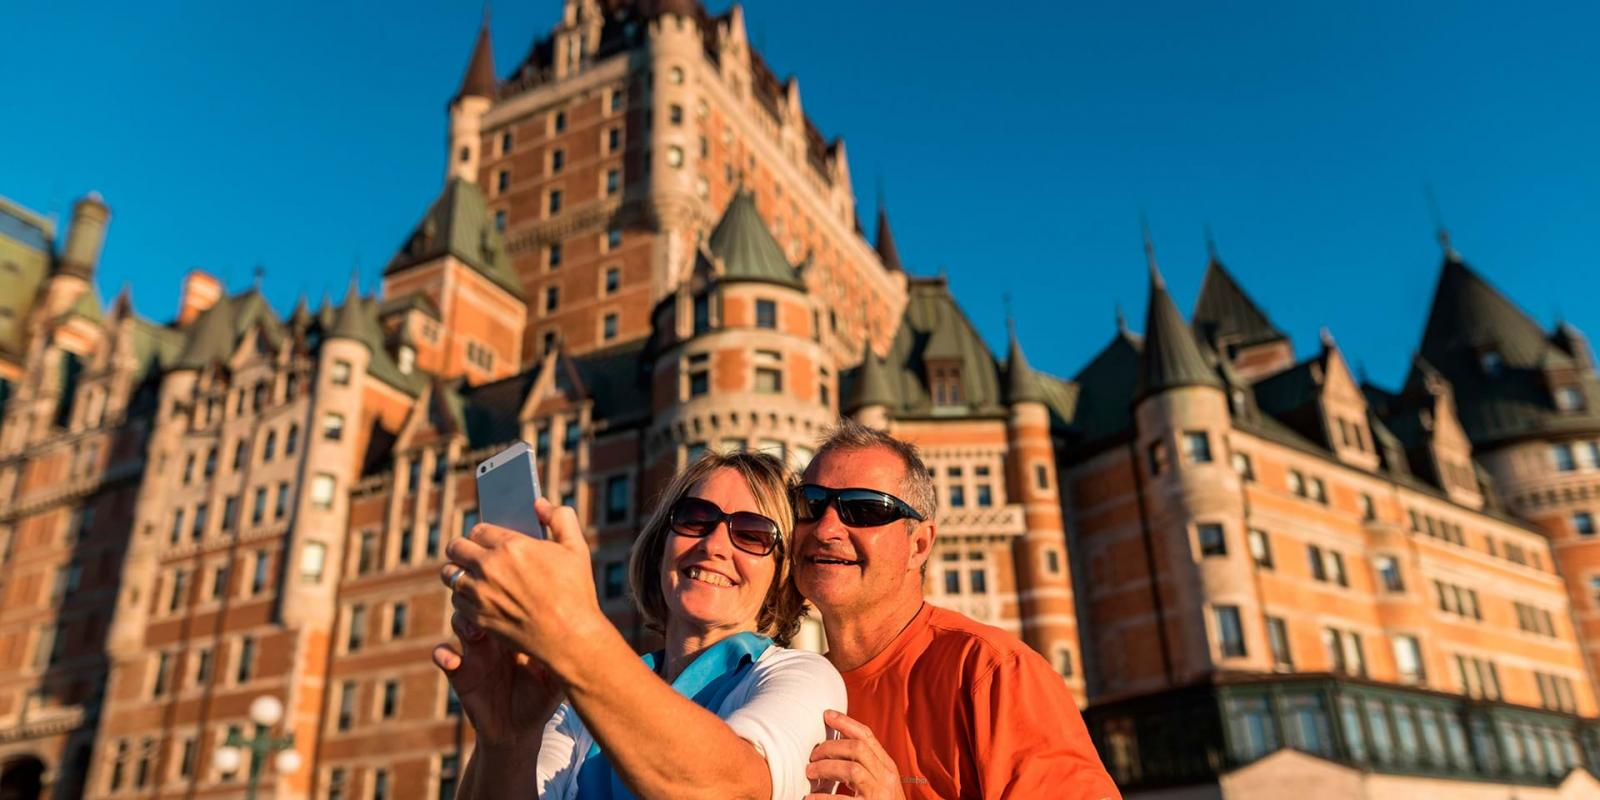 A couple takes a picture of themselves on the Dufferin terrace, in front of the Château Frontenac.